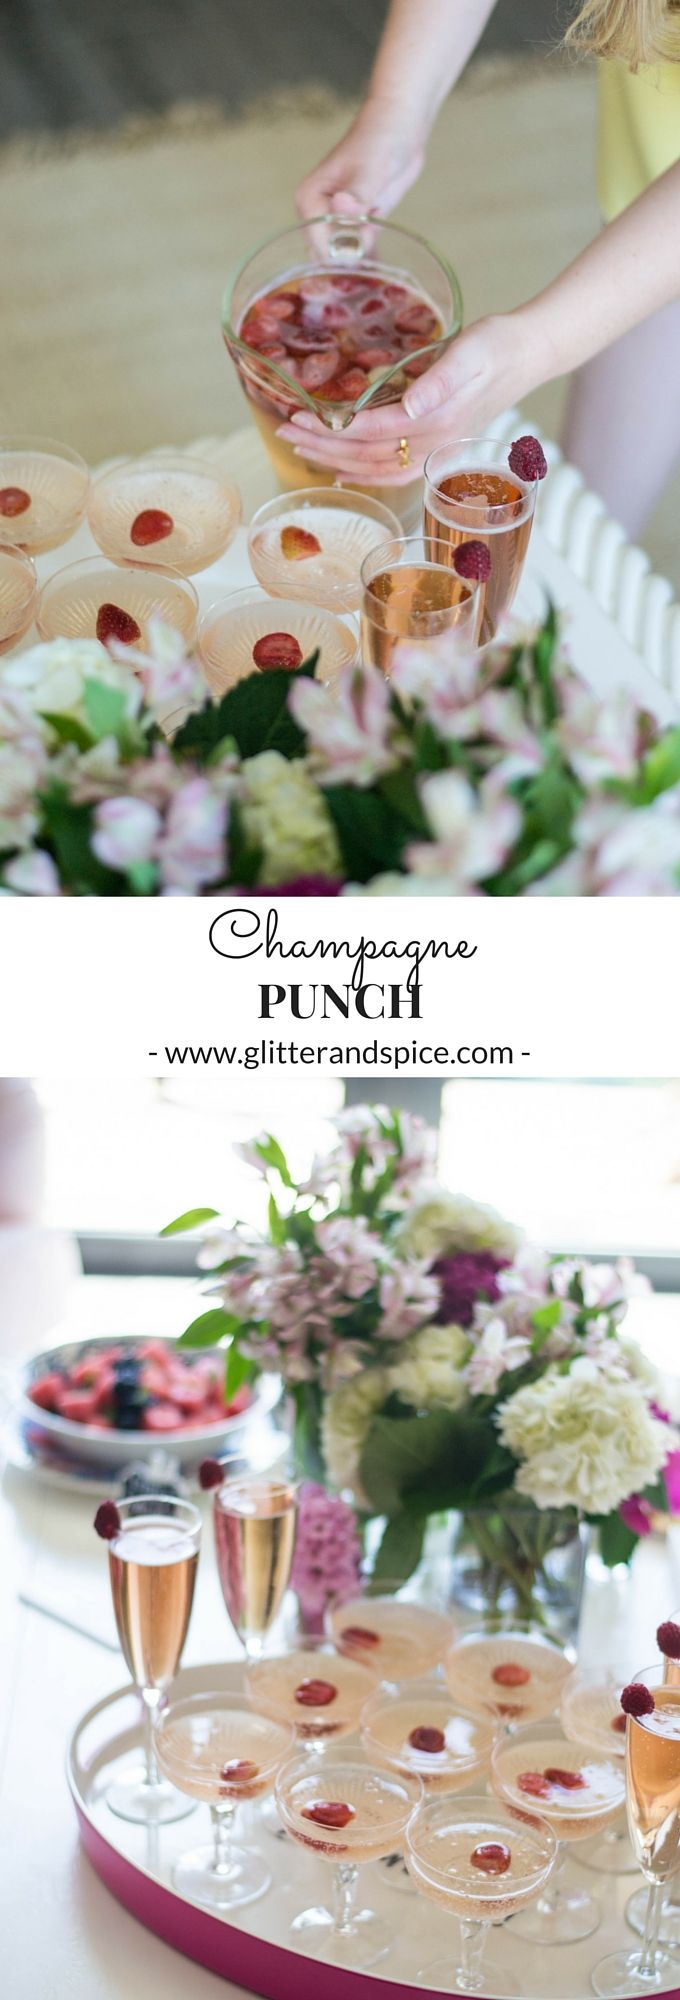 This Champagne Punch recipe from Glitter & Spice is the perfect drink to serve at a brunch, bridal shower, or soiree!